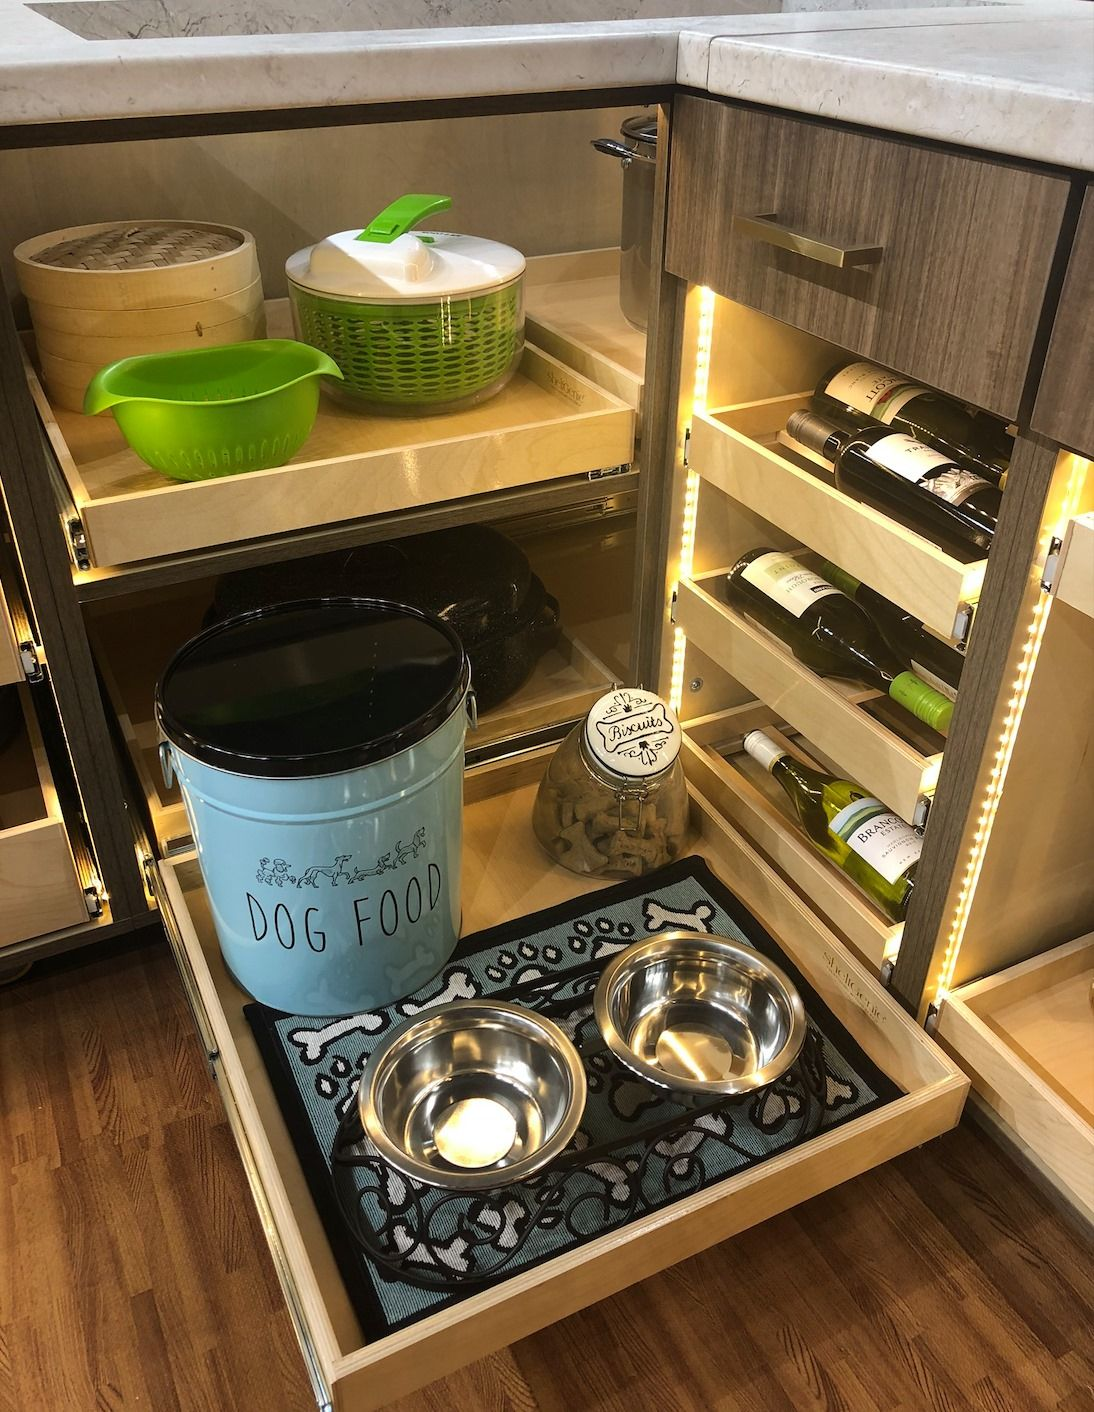 Our Shelfgenie Designers Create A Design That Is Perfect For You This Glide Out Tray Ho Kitchen Space Savers Small Kitchen Space Savers Small Kitchen Cabinets Space saver kitchen island